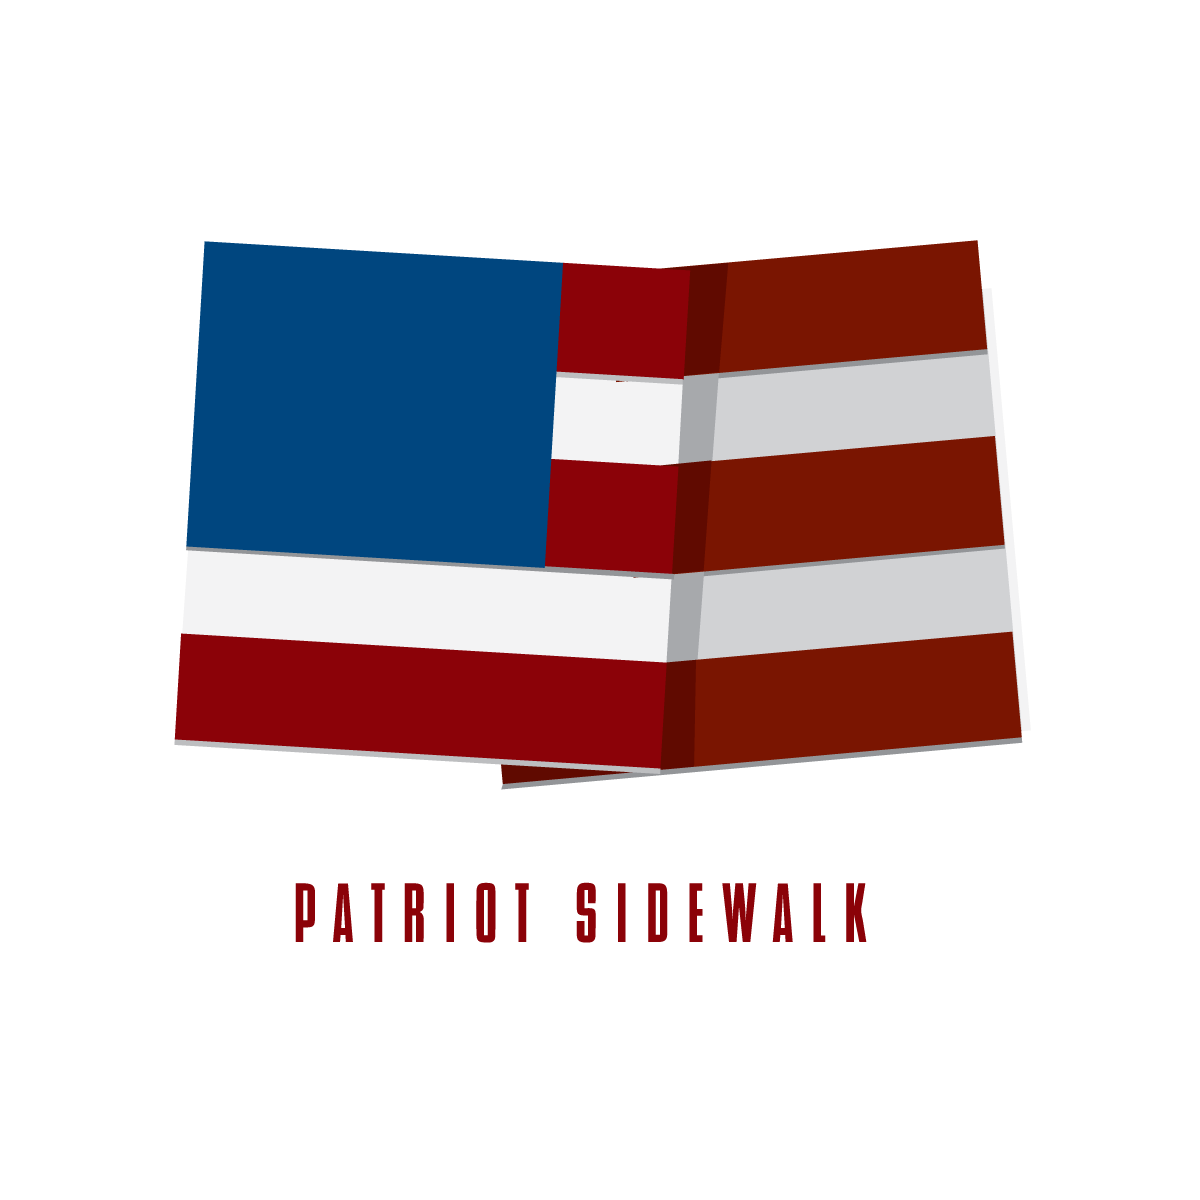 patriot sidewalk logo